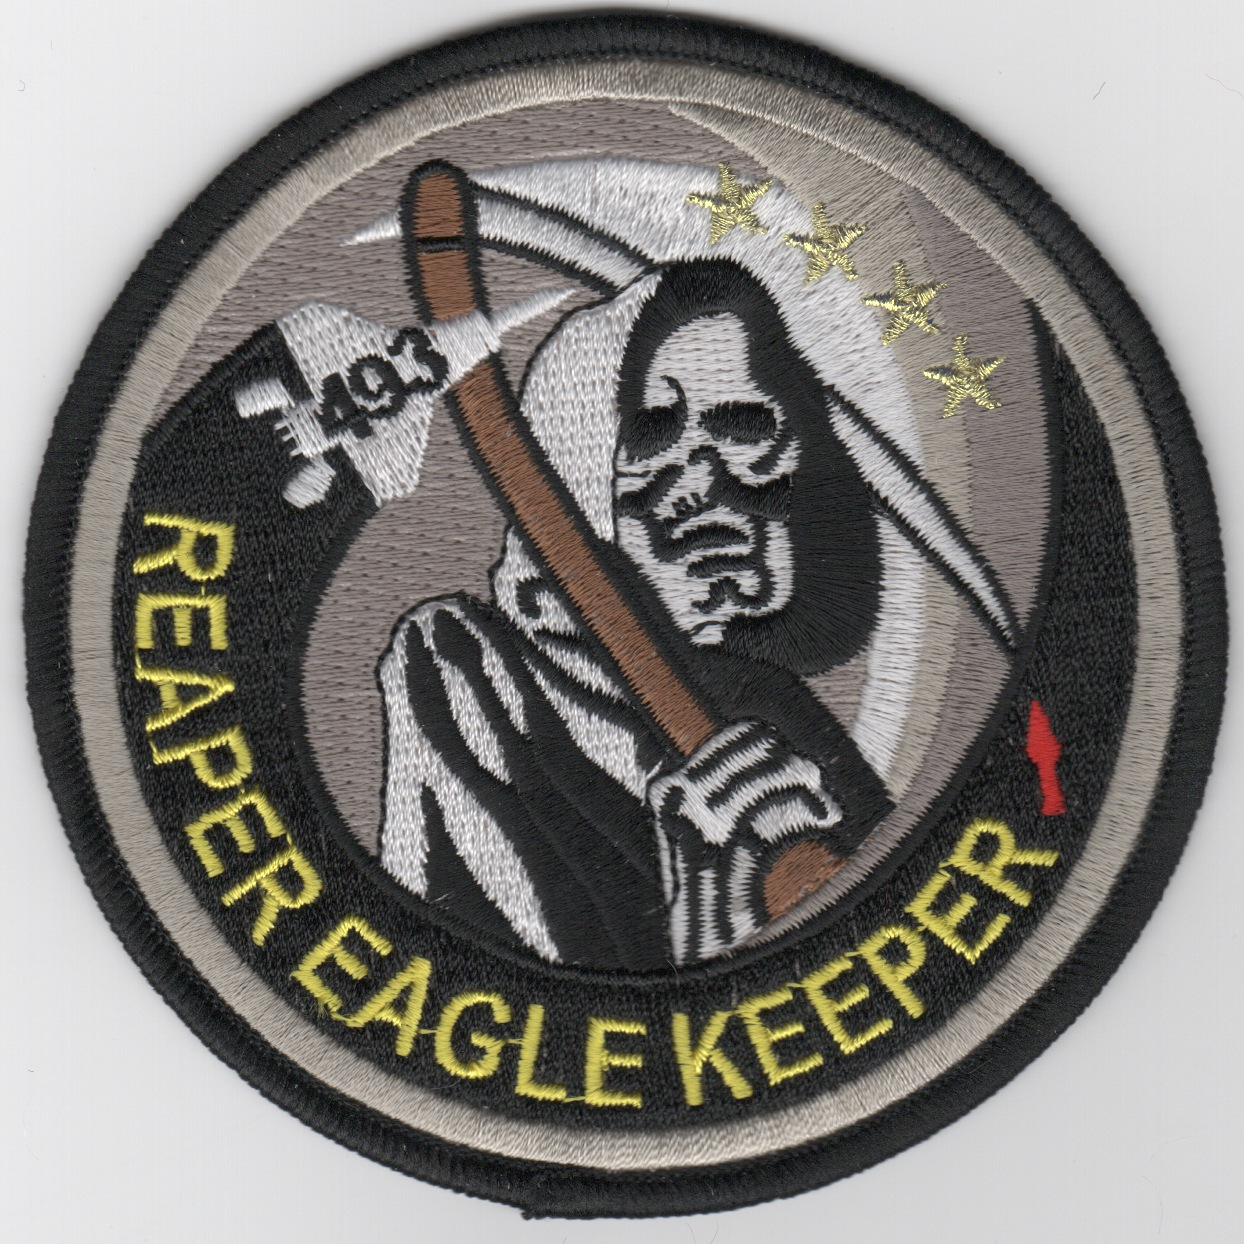 493FS Reaper 'Eagle Keeper'